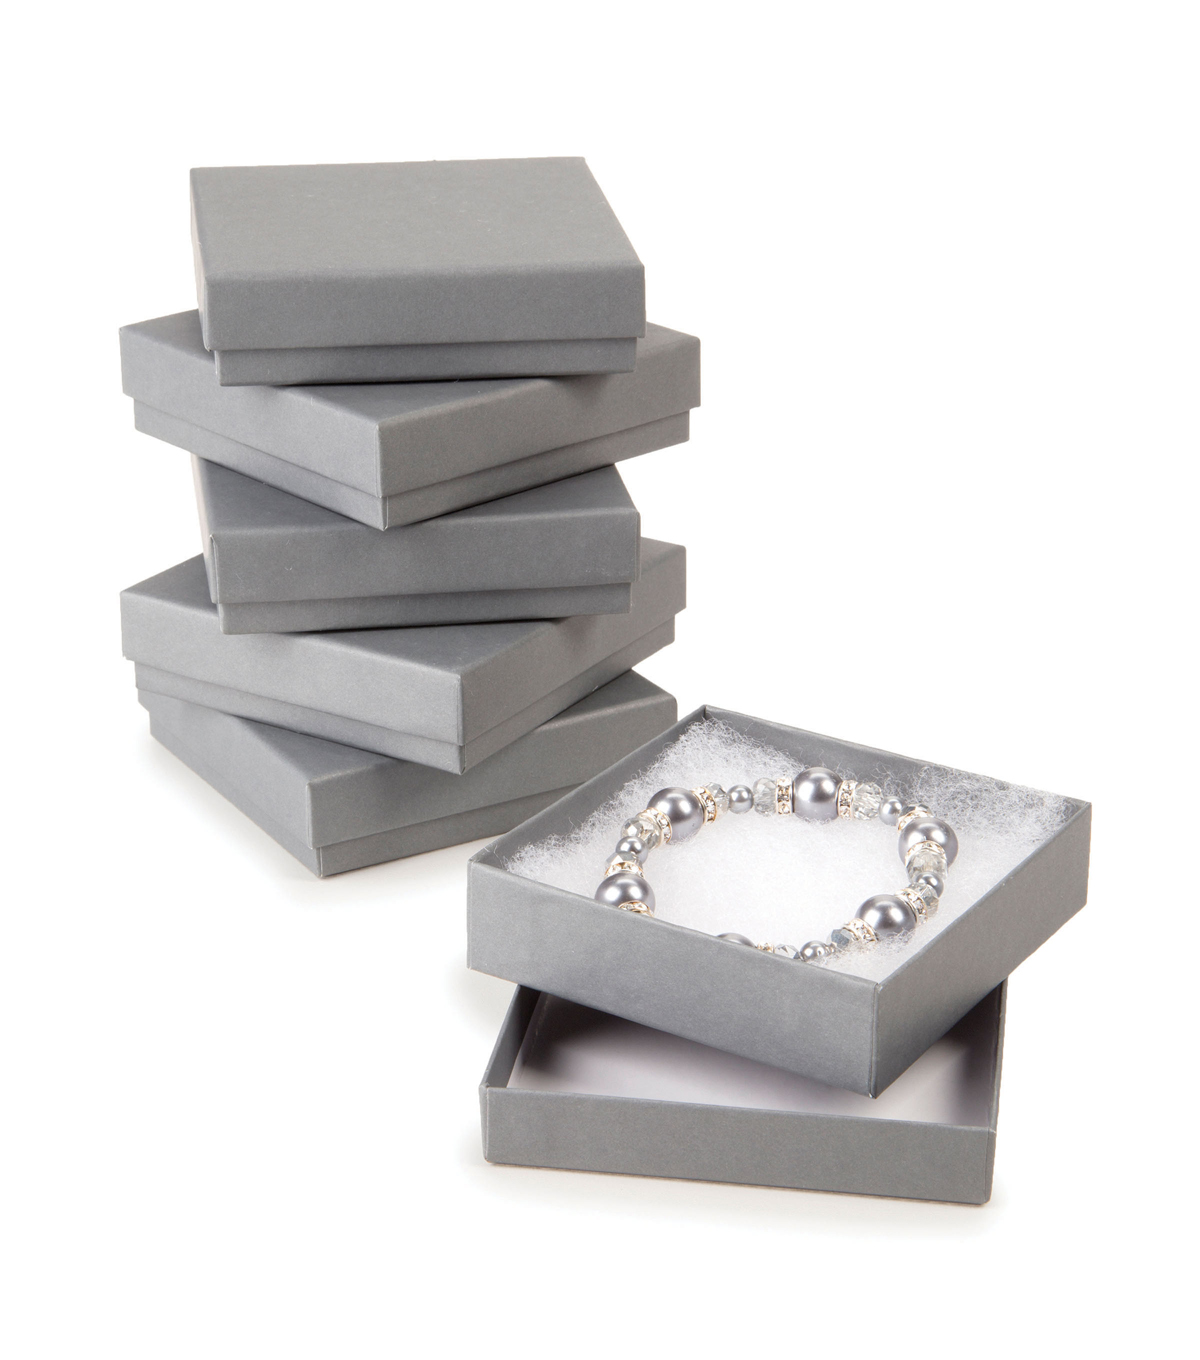 Jewelry Gift Boxes-Grey 6pk